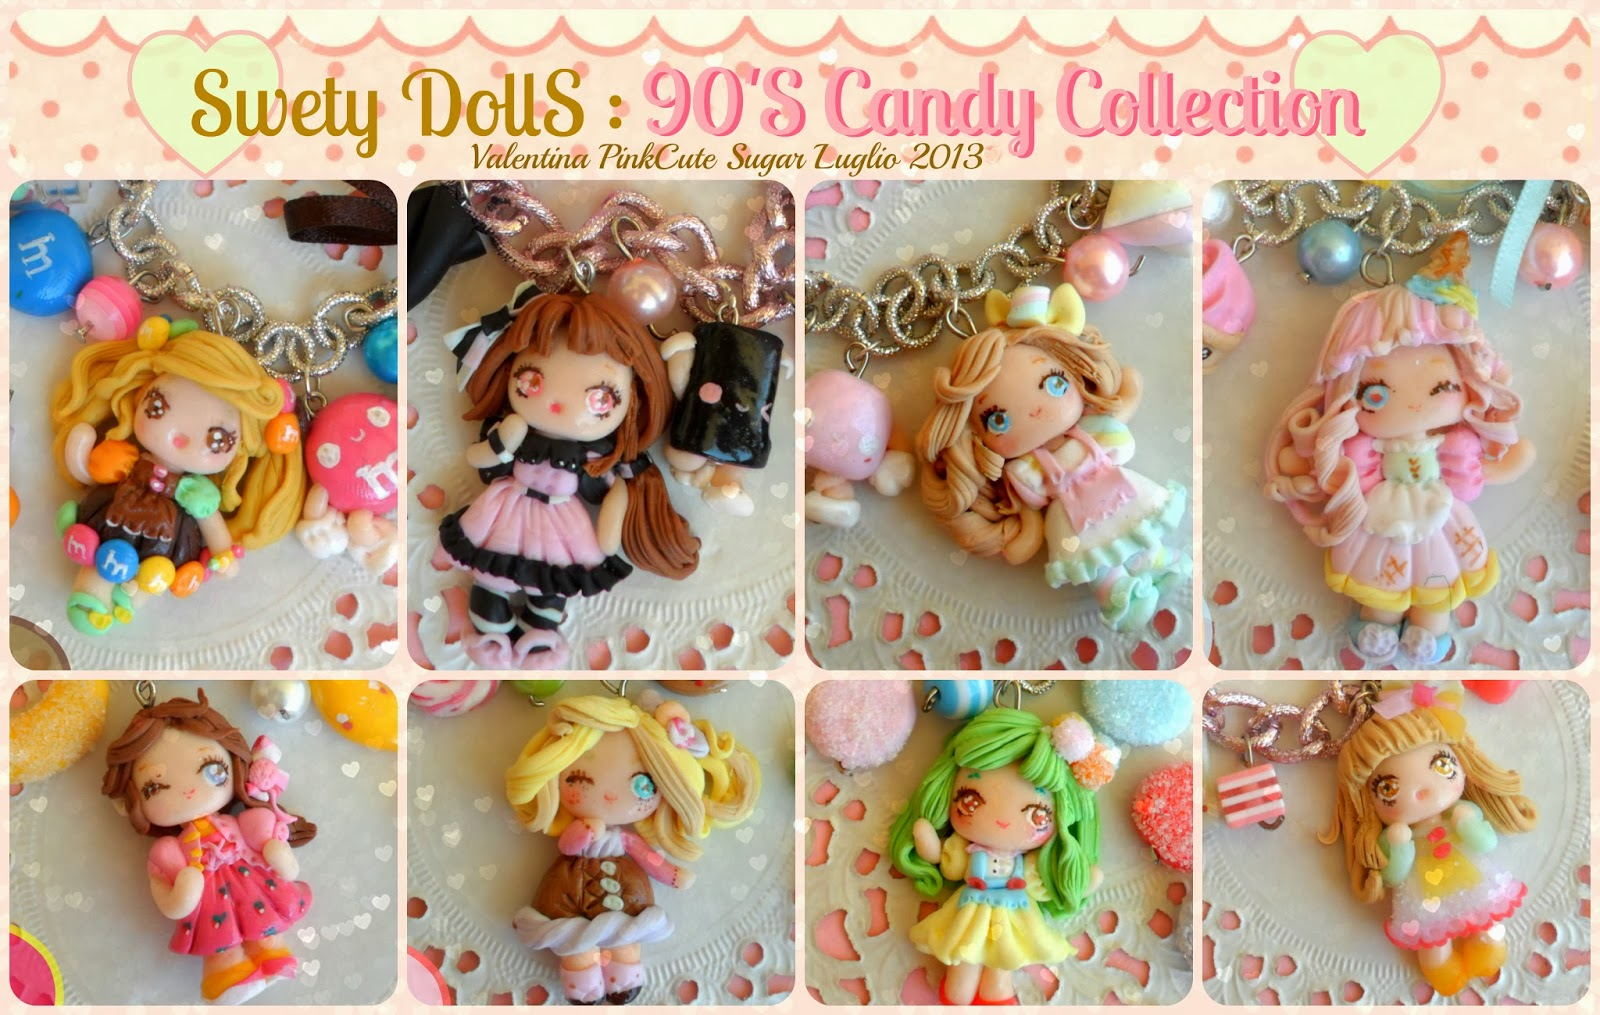 Swet BAMBOLE Y: 90 Candy Collection ♡